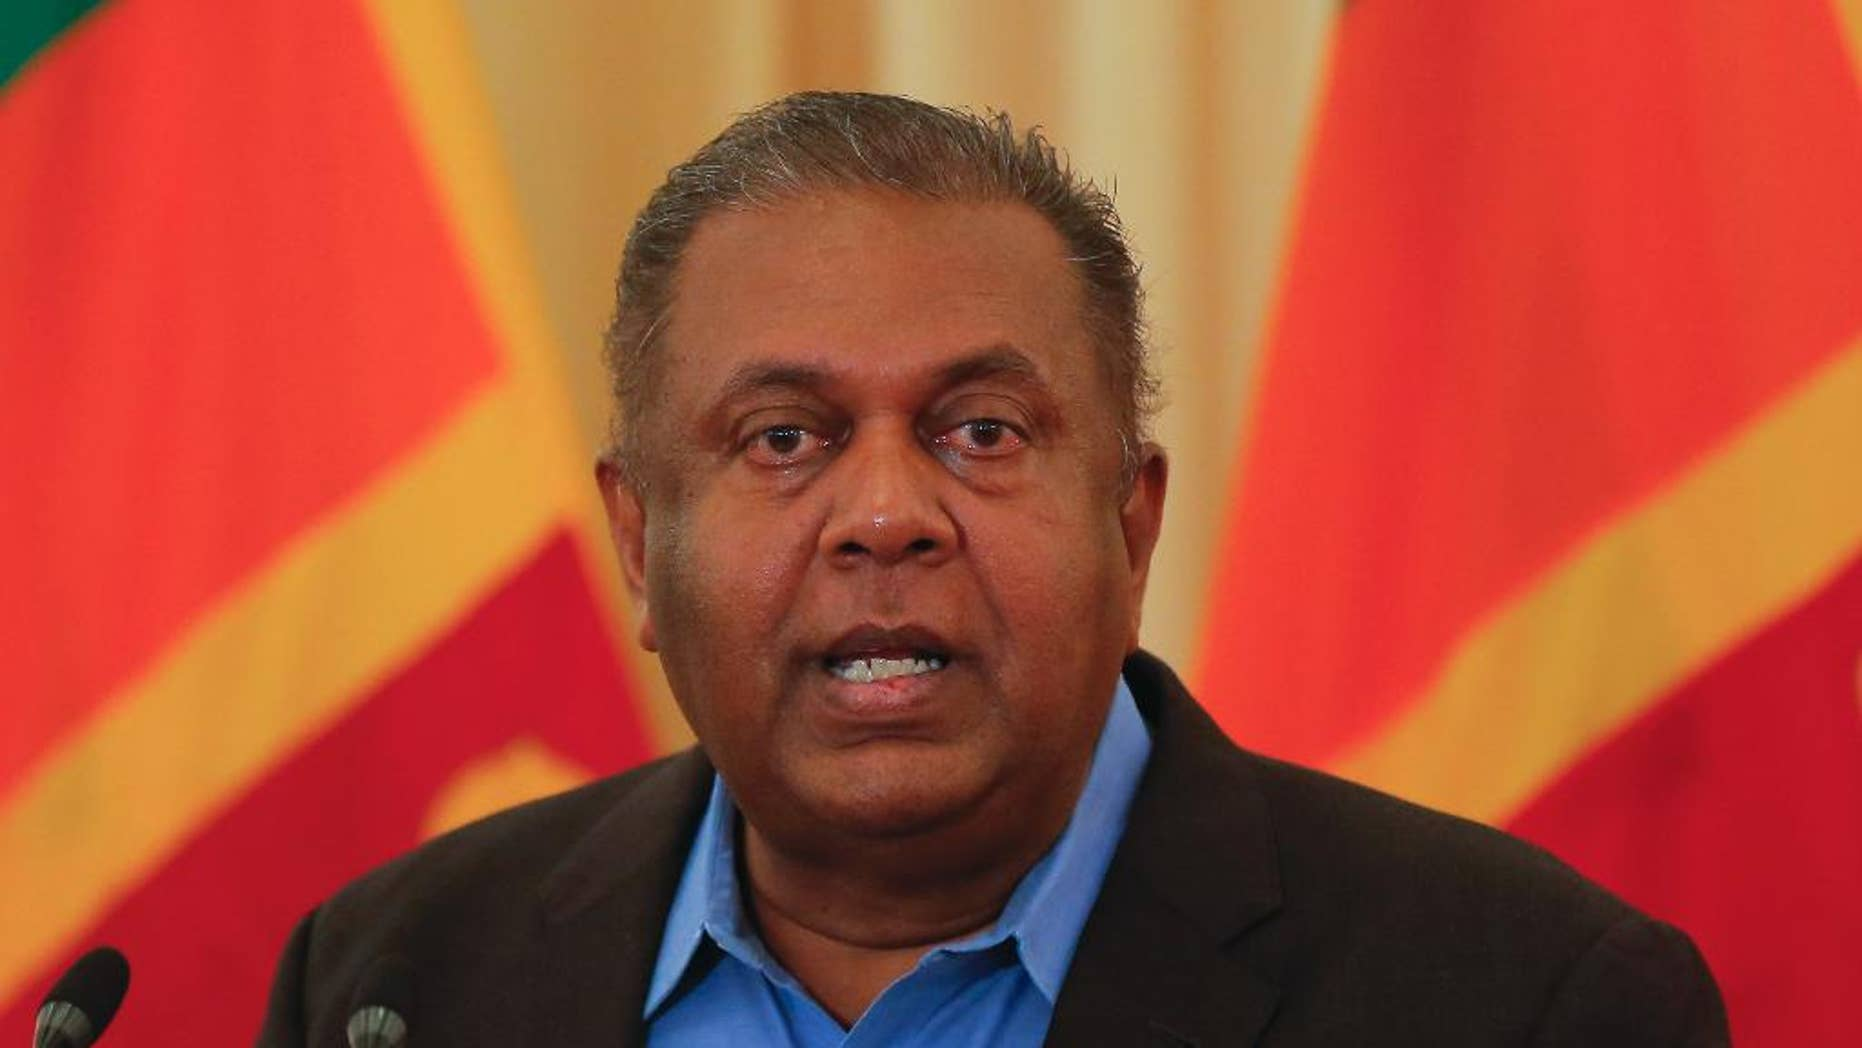 Sri Lankan Foreign Minister Mangala Samaraweera gestures as he addresses the media after returning from a U.N. Human Rights Council meeting in Geneva in Colombo, Sri Lanka, Wednesday, July 6, 2016.Sri Lanka's government plans to set up a special court by next year to hear allegations of abuses during the country's decades-long civil war, the foreign minister said Wednesday. (AP Photo/Eranga Jayawardena)